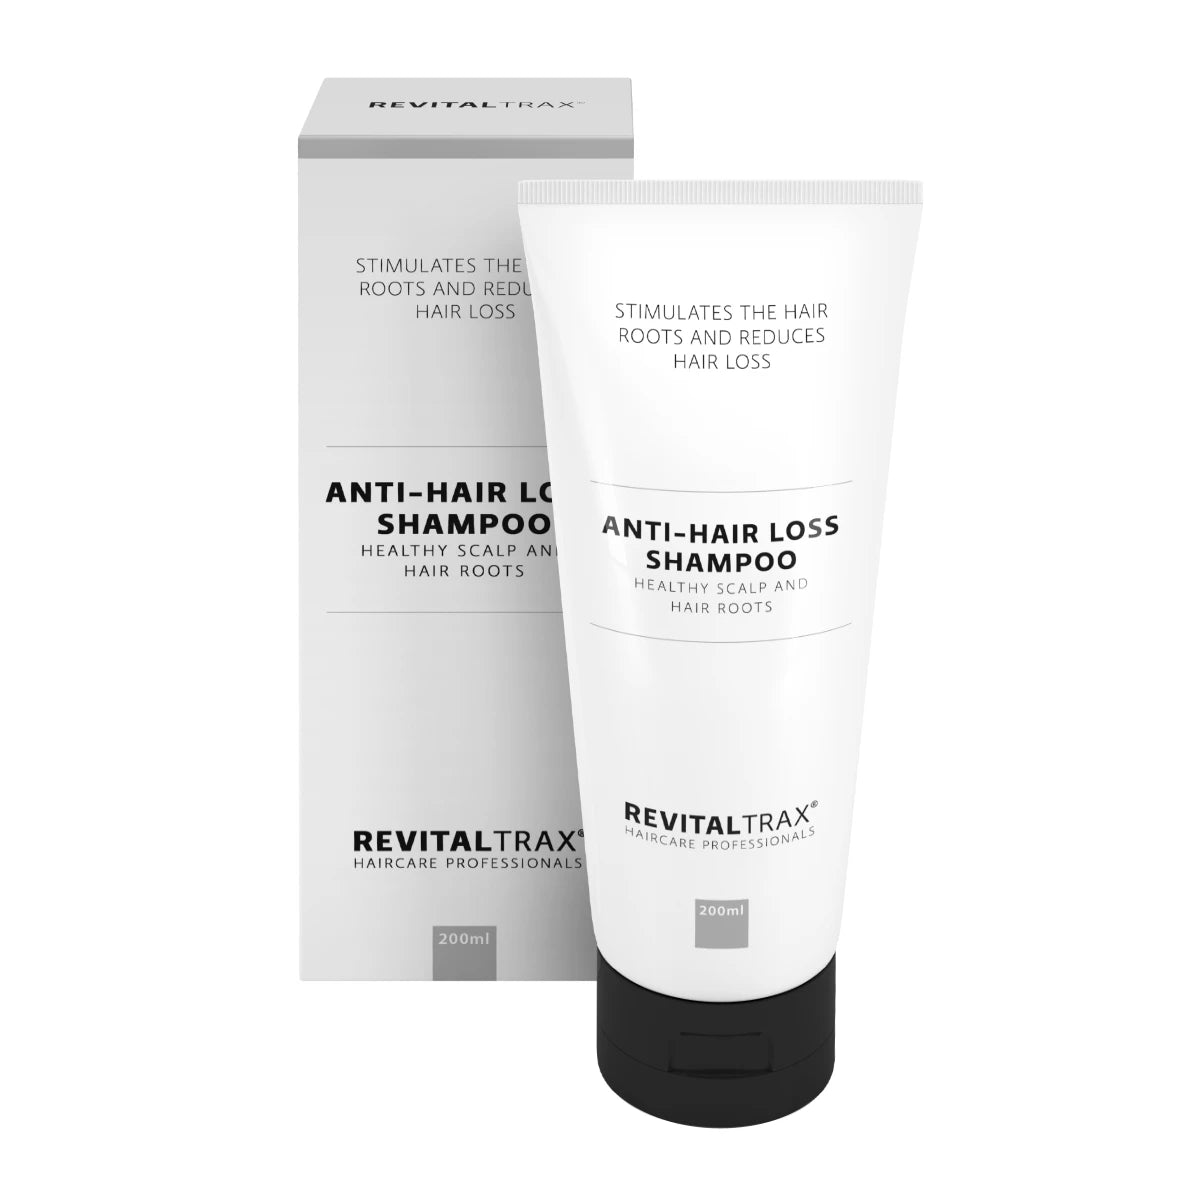 RevitalTrax Anti-Hair Loss Shampoo.